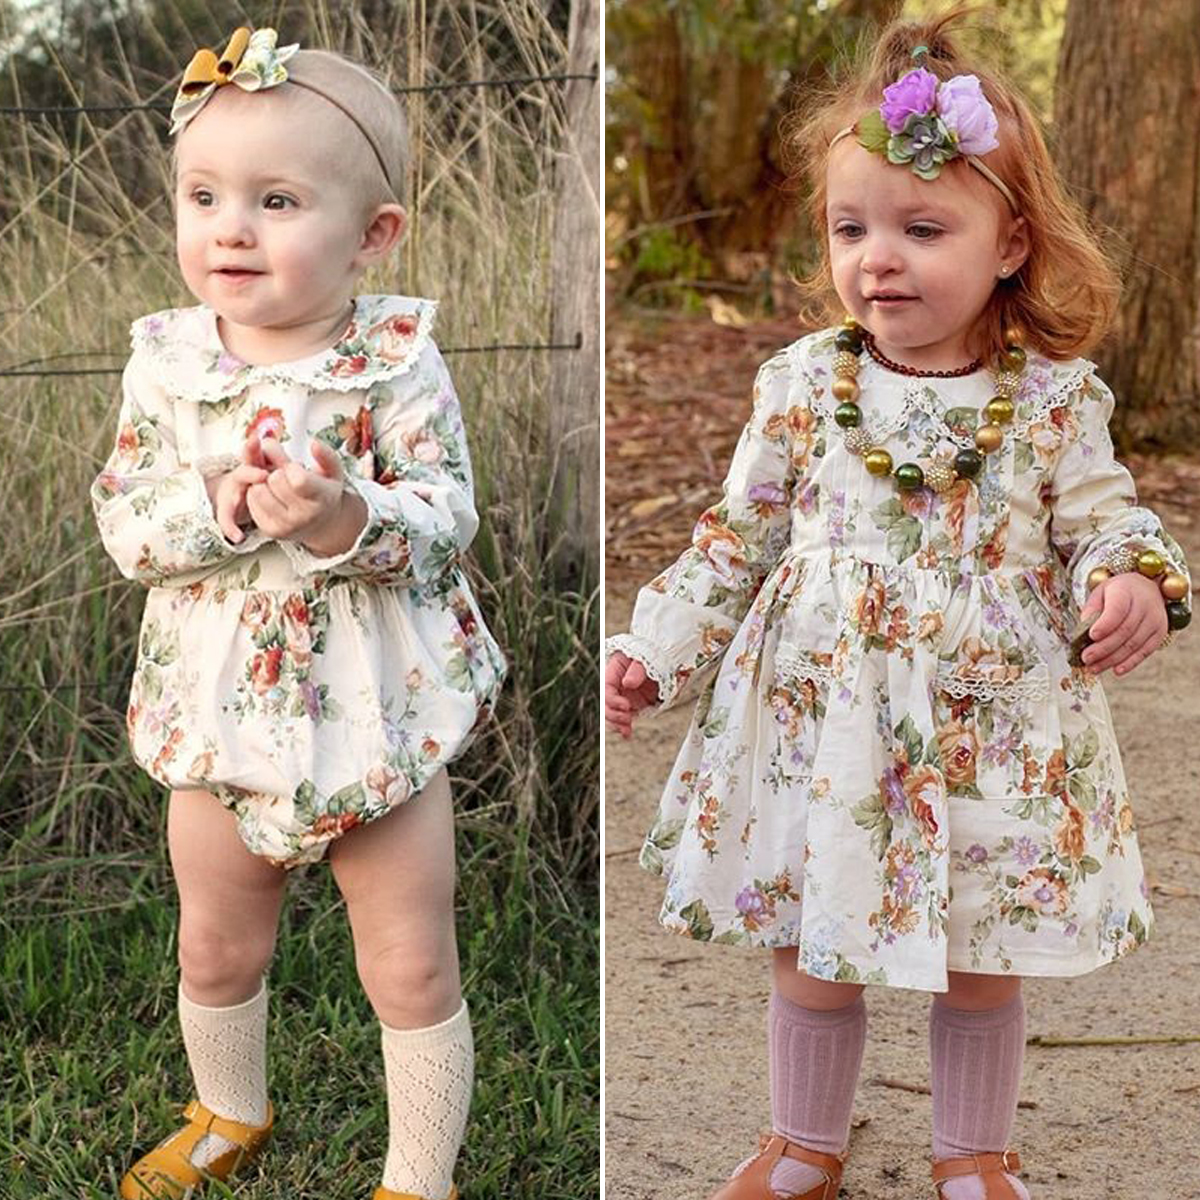 Little//Big Sister Matching Clothes Kids Baby Girl Floral Romper Dress Outfits UK